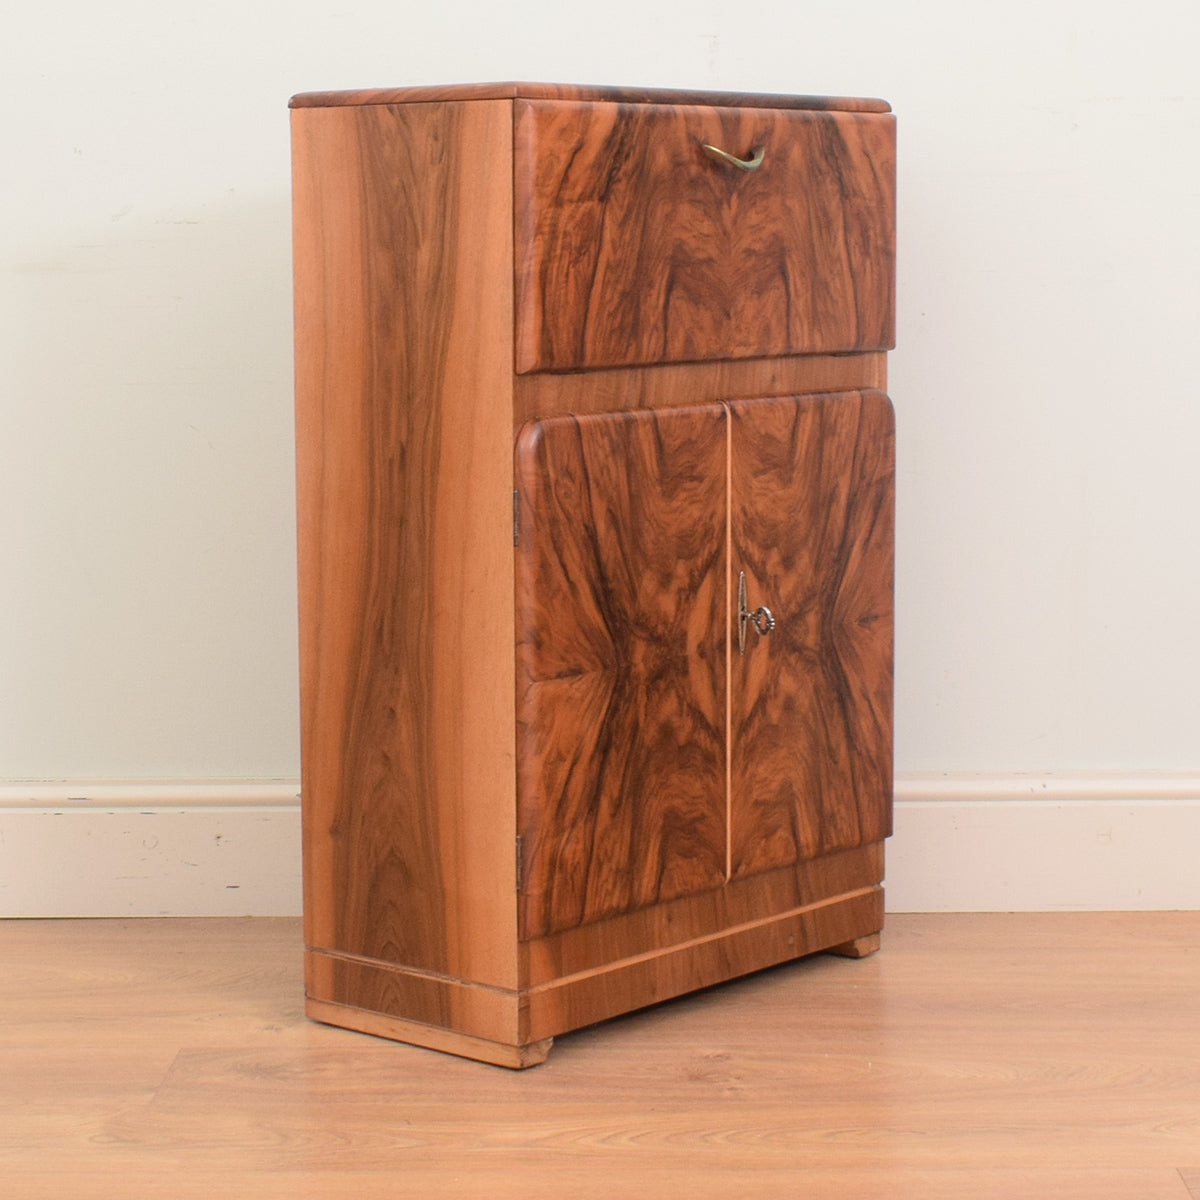 Restored Drinks Cabinet